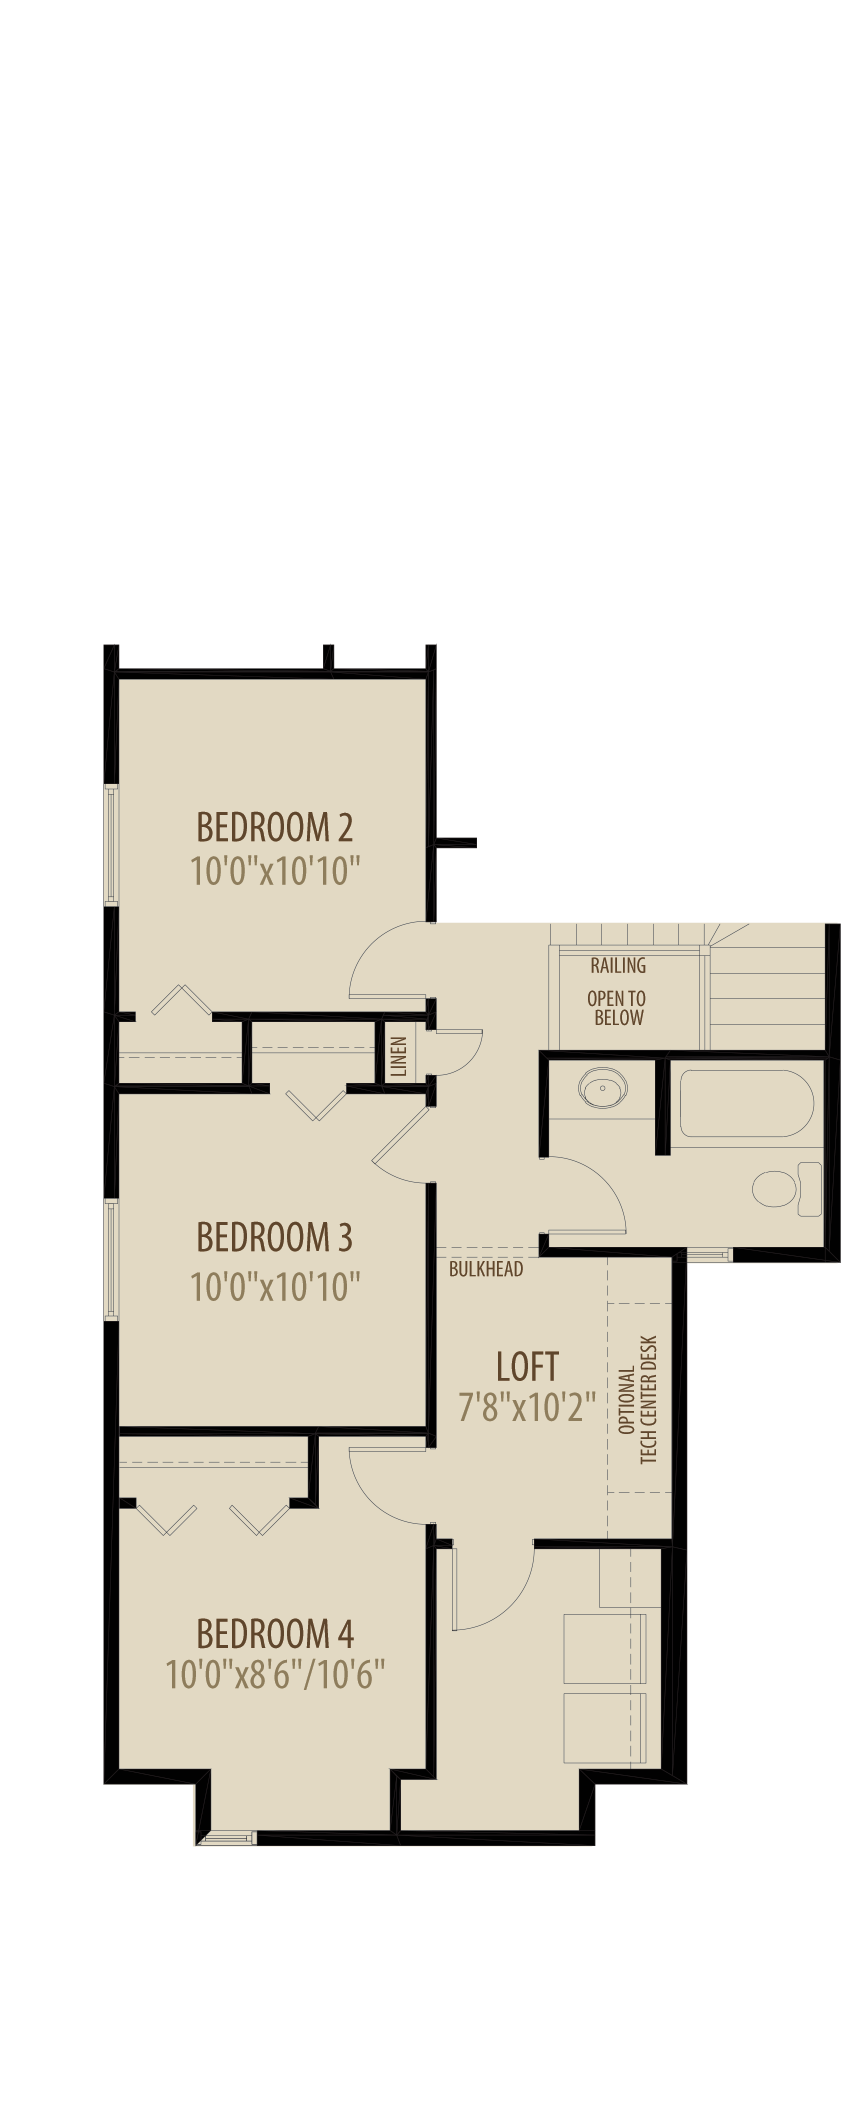 4th Bedroom and Laundry Room